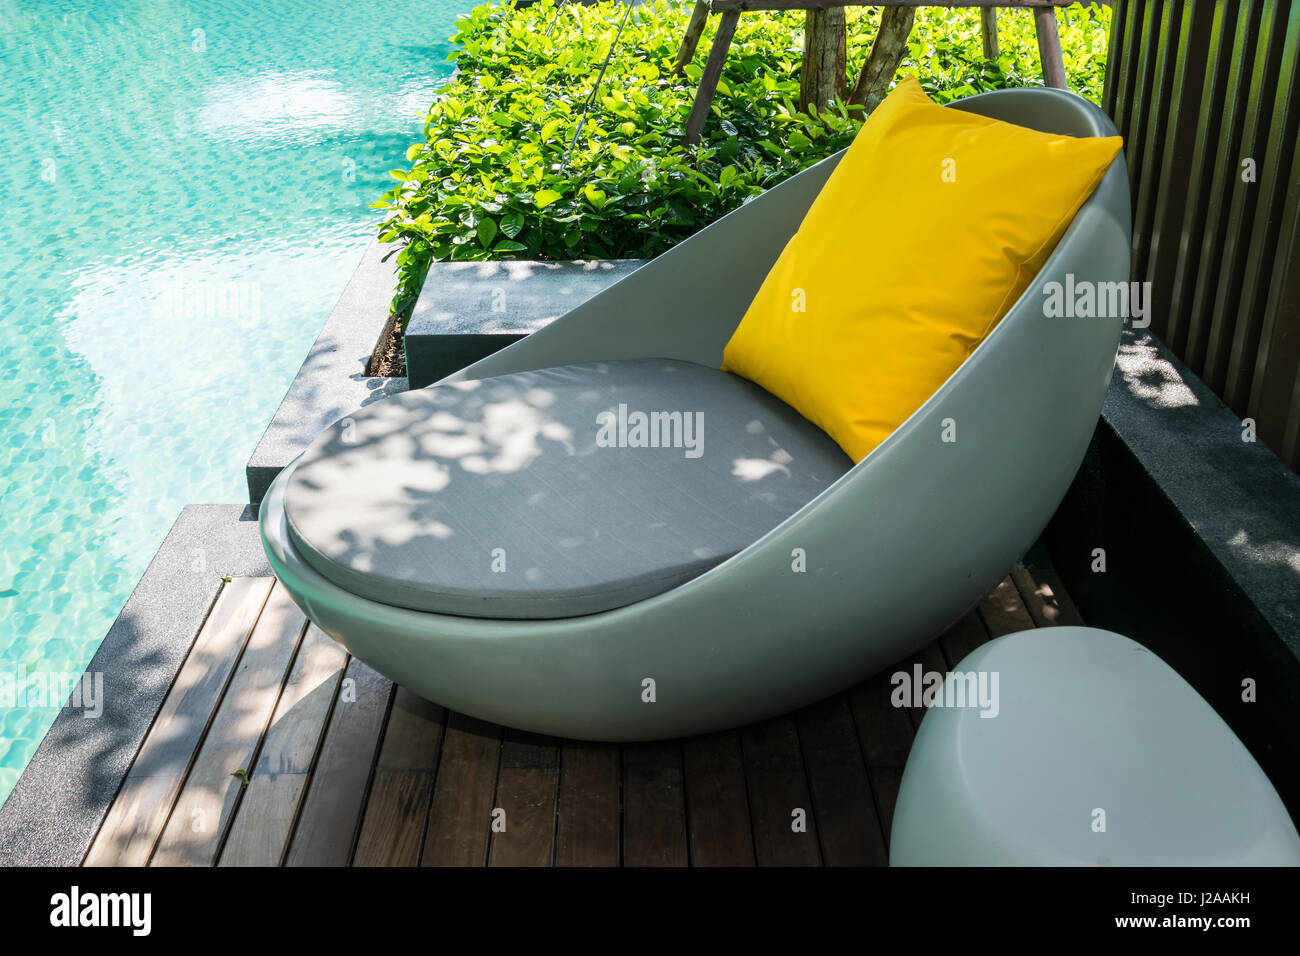 Chair Beside Bed Stock Photos & Chair Beside Bed Stock Images - Alamy